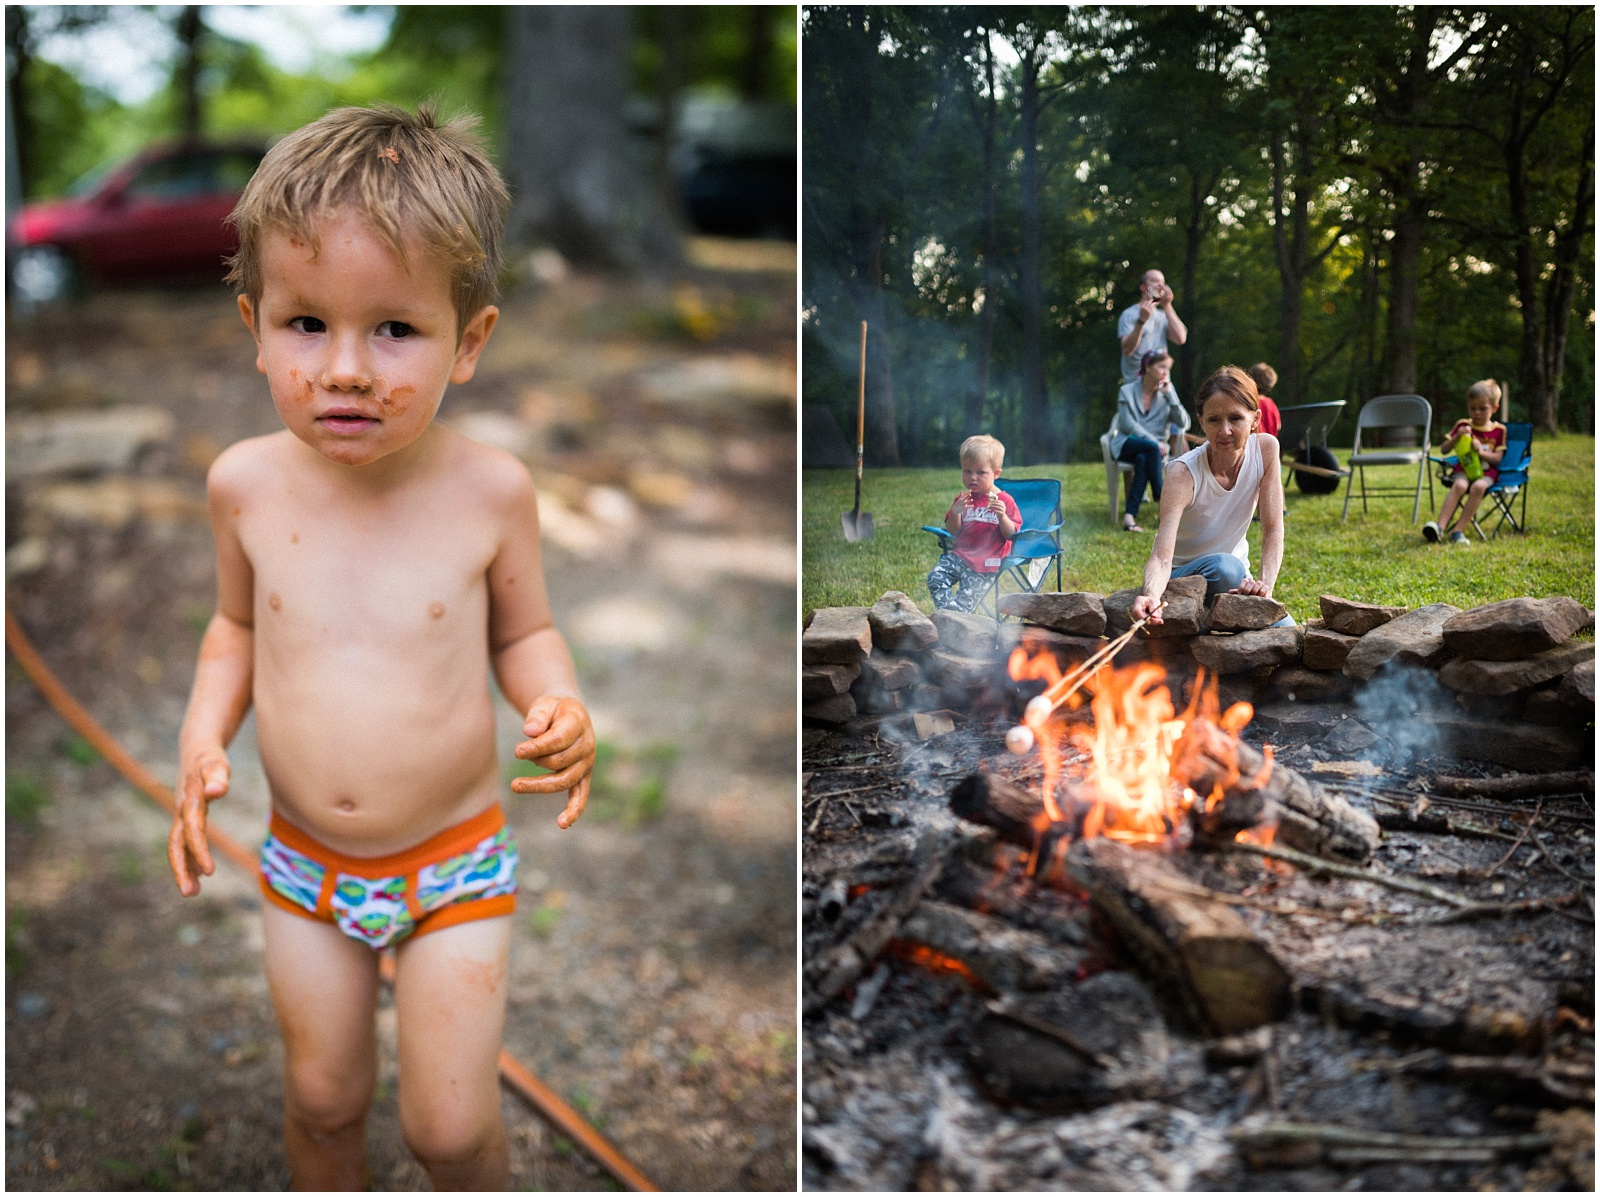 Camping collage